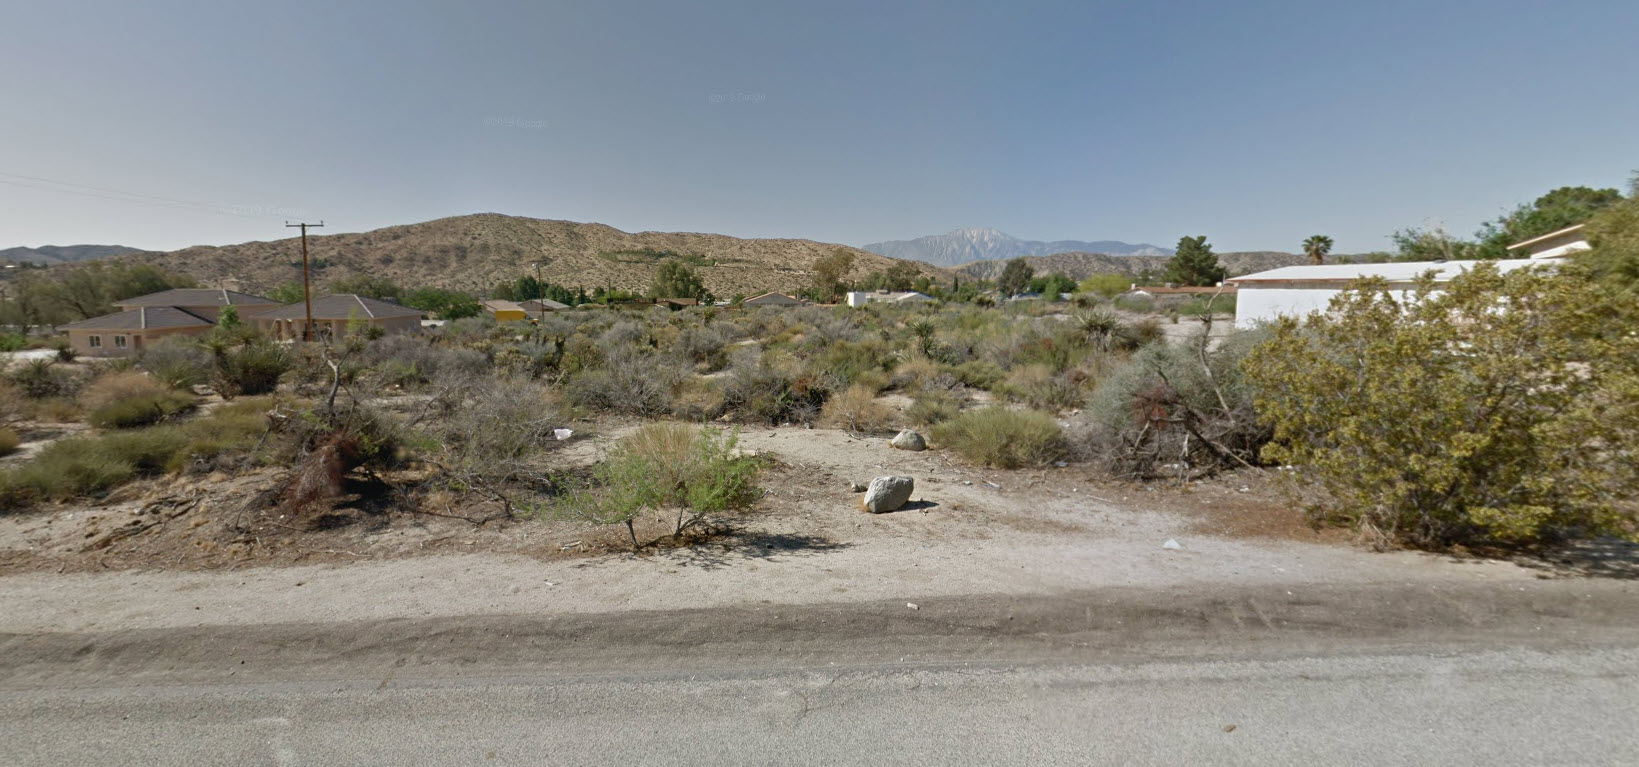 1.25 Acre Morongo Valley Vacant Lot Vacant Land 20 Minutes Away From Morongo Casino